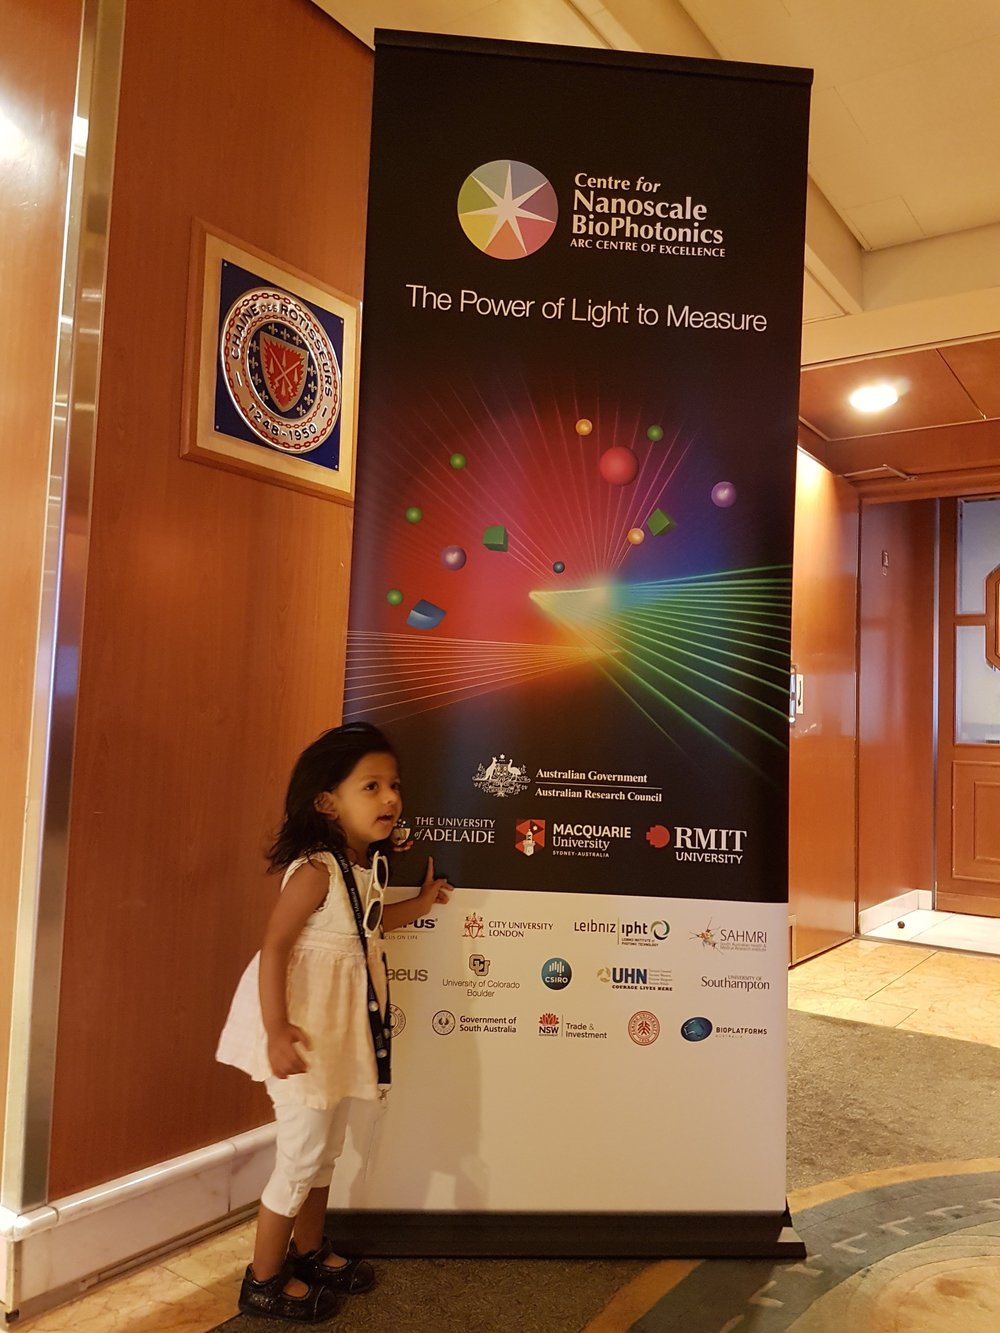 My daughter accompanied me to the CNBP annual conference in 2017 and 2016. CNBP have a family friendly policy and support dependent travel.